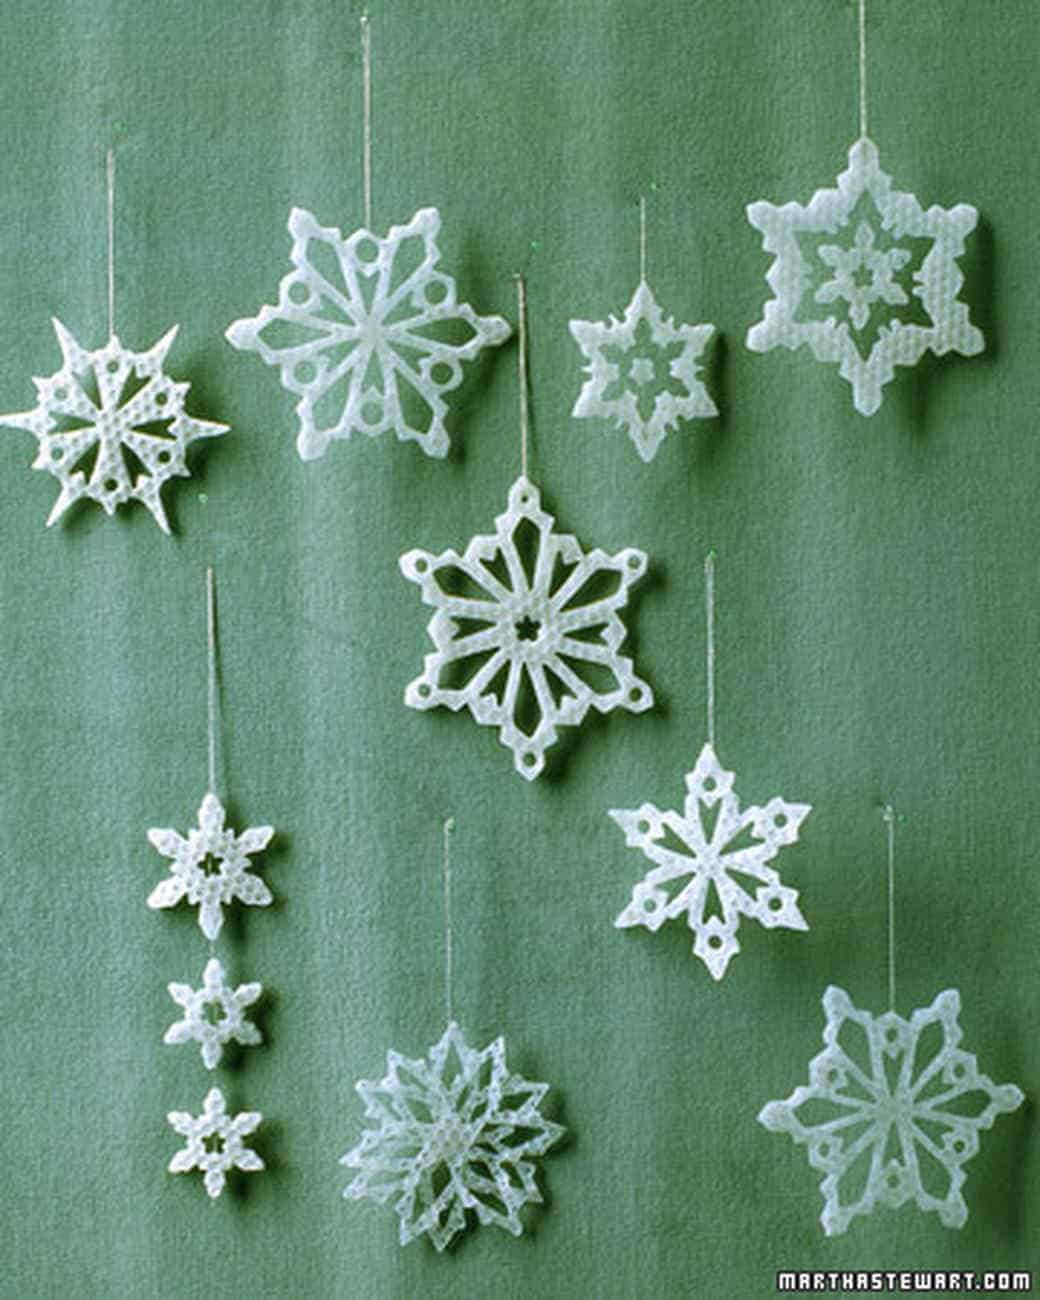 Pretty wax snowflakes